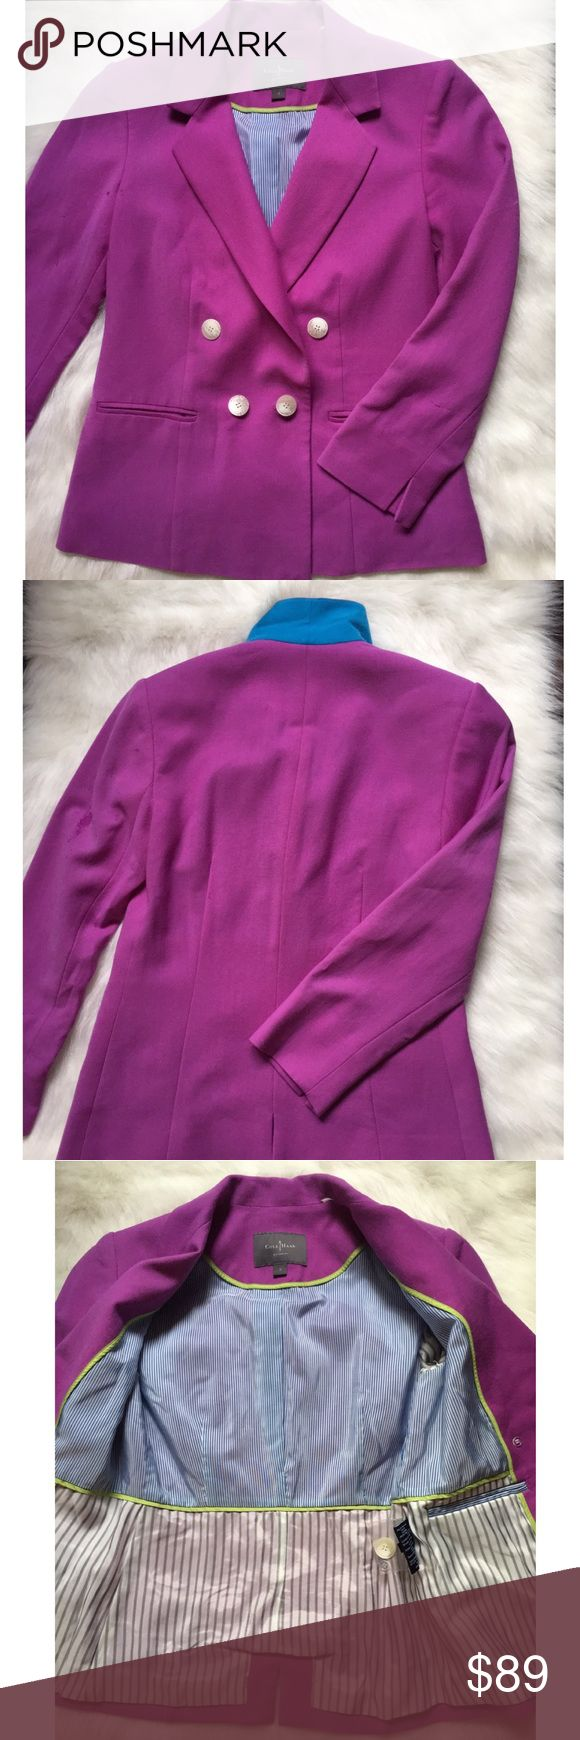 Cole Haan wool magenta double breasted blazer NWOT Cole Haan wool double breasted lined blazer. NWOT. 2 faux pockets in front. Perfect condition! Cole Haan Jackets & Coats Blazers